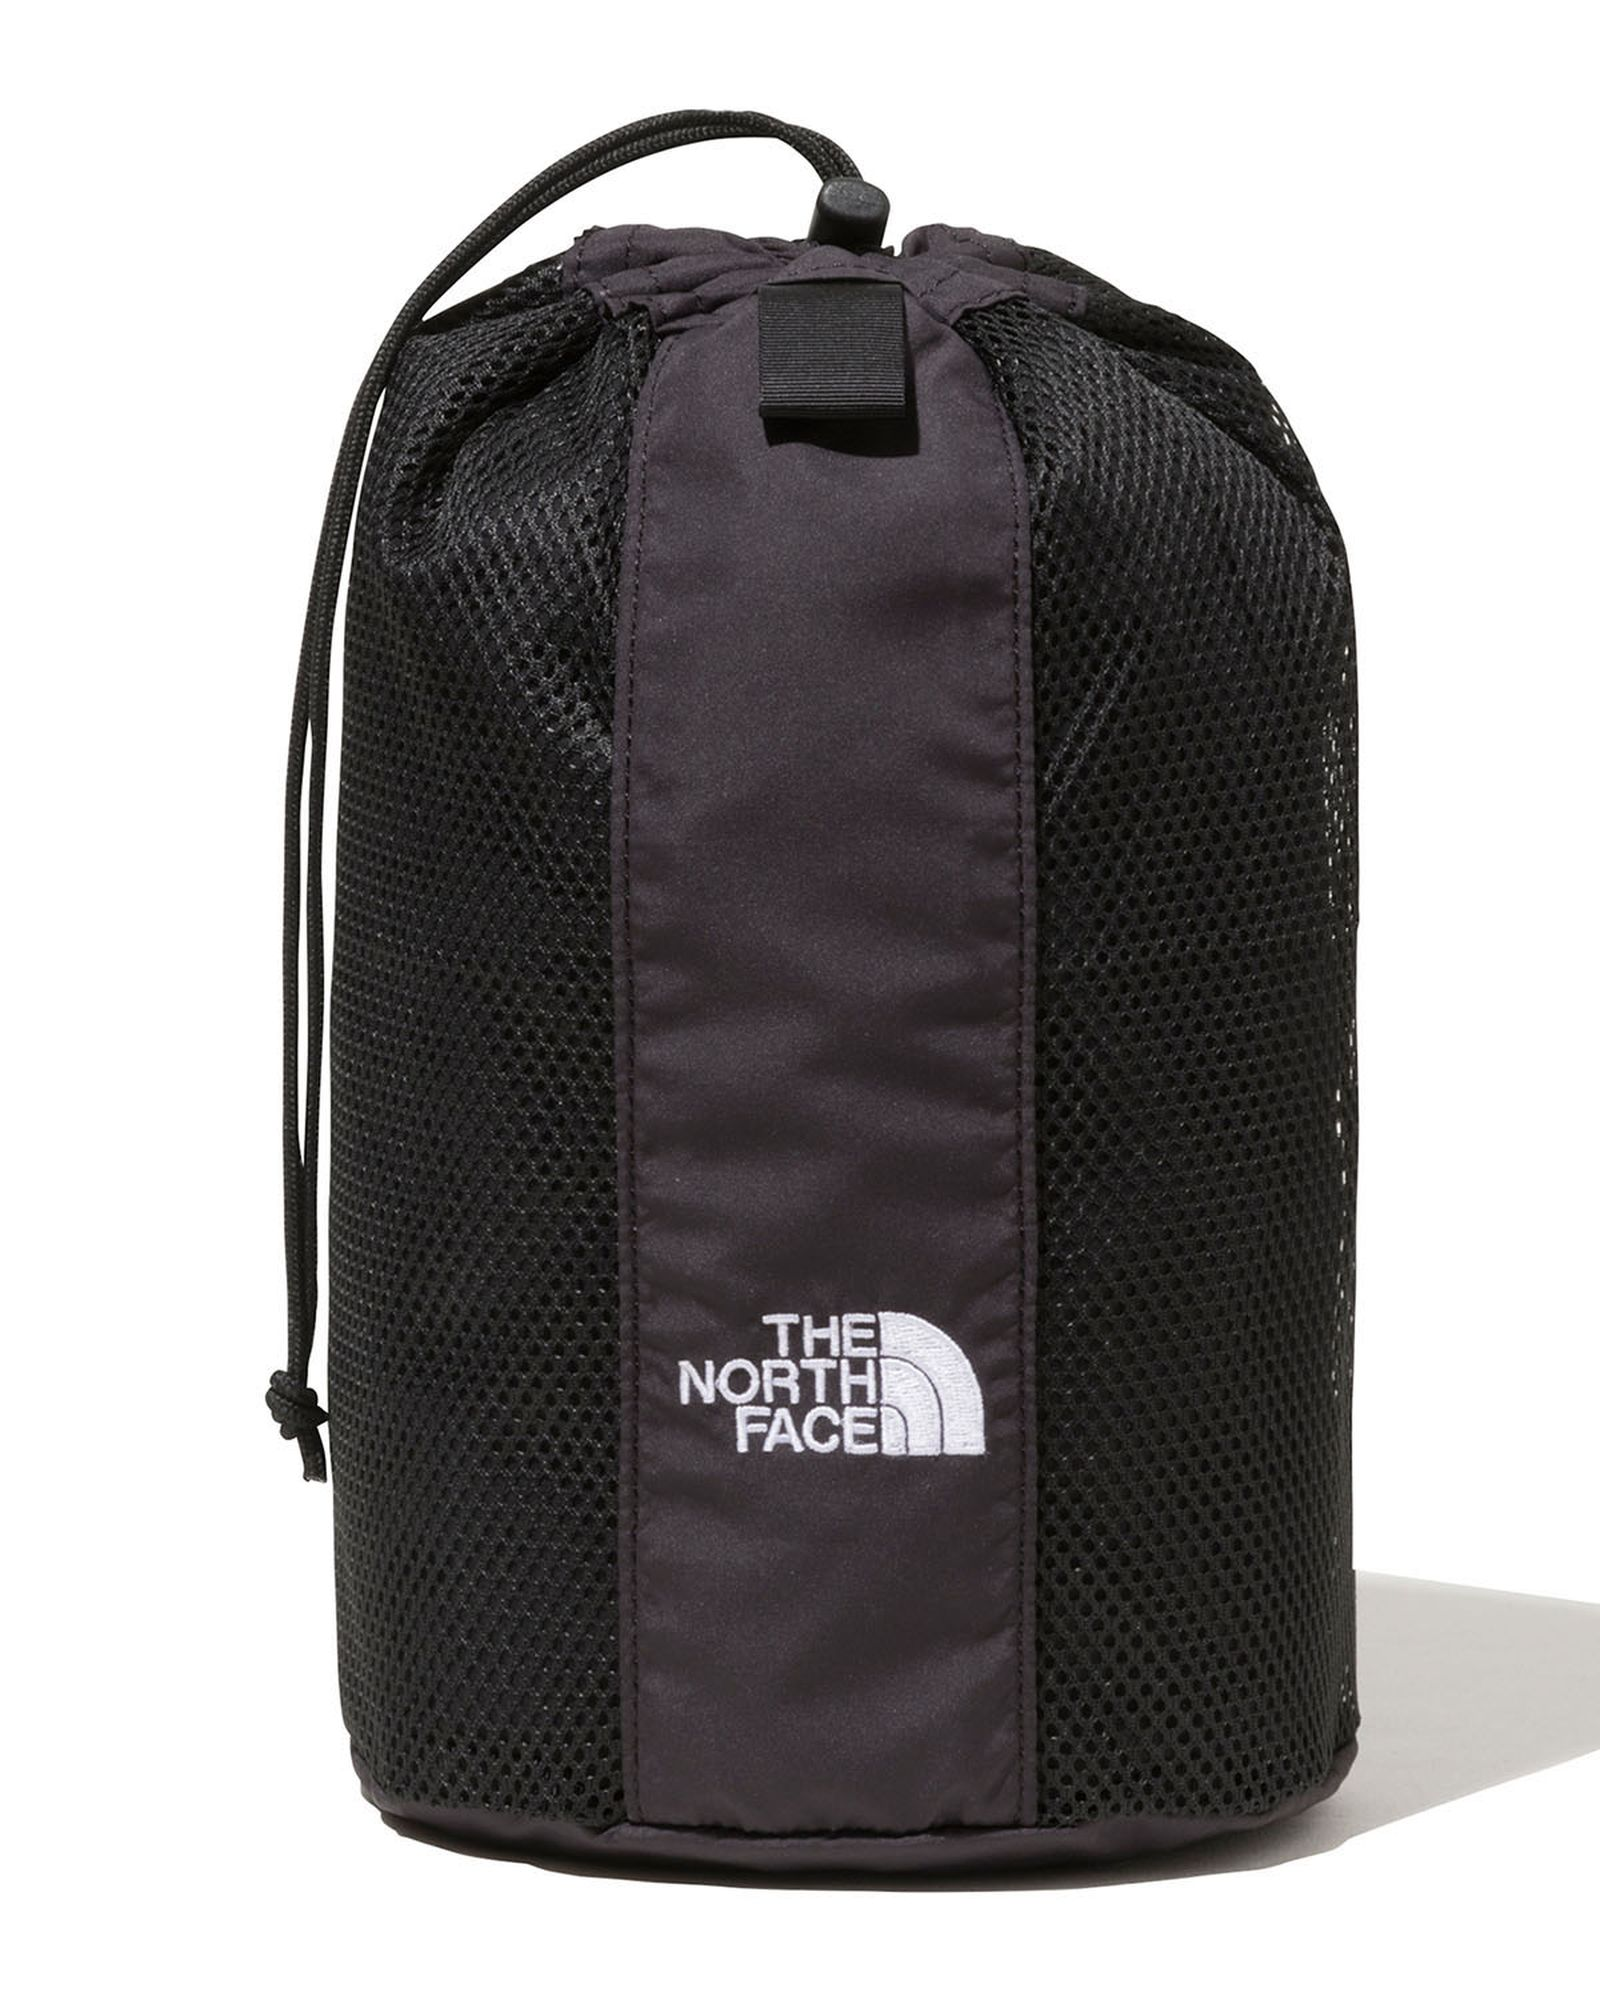 the-north-face-baby-carrier-02